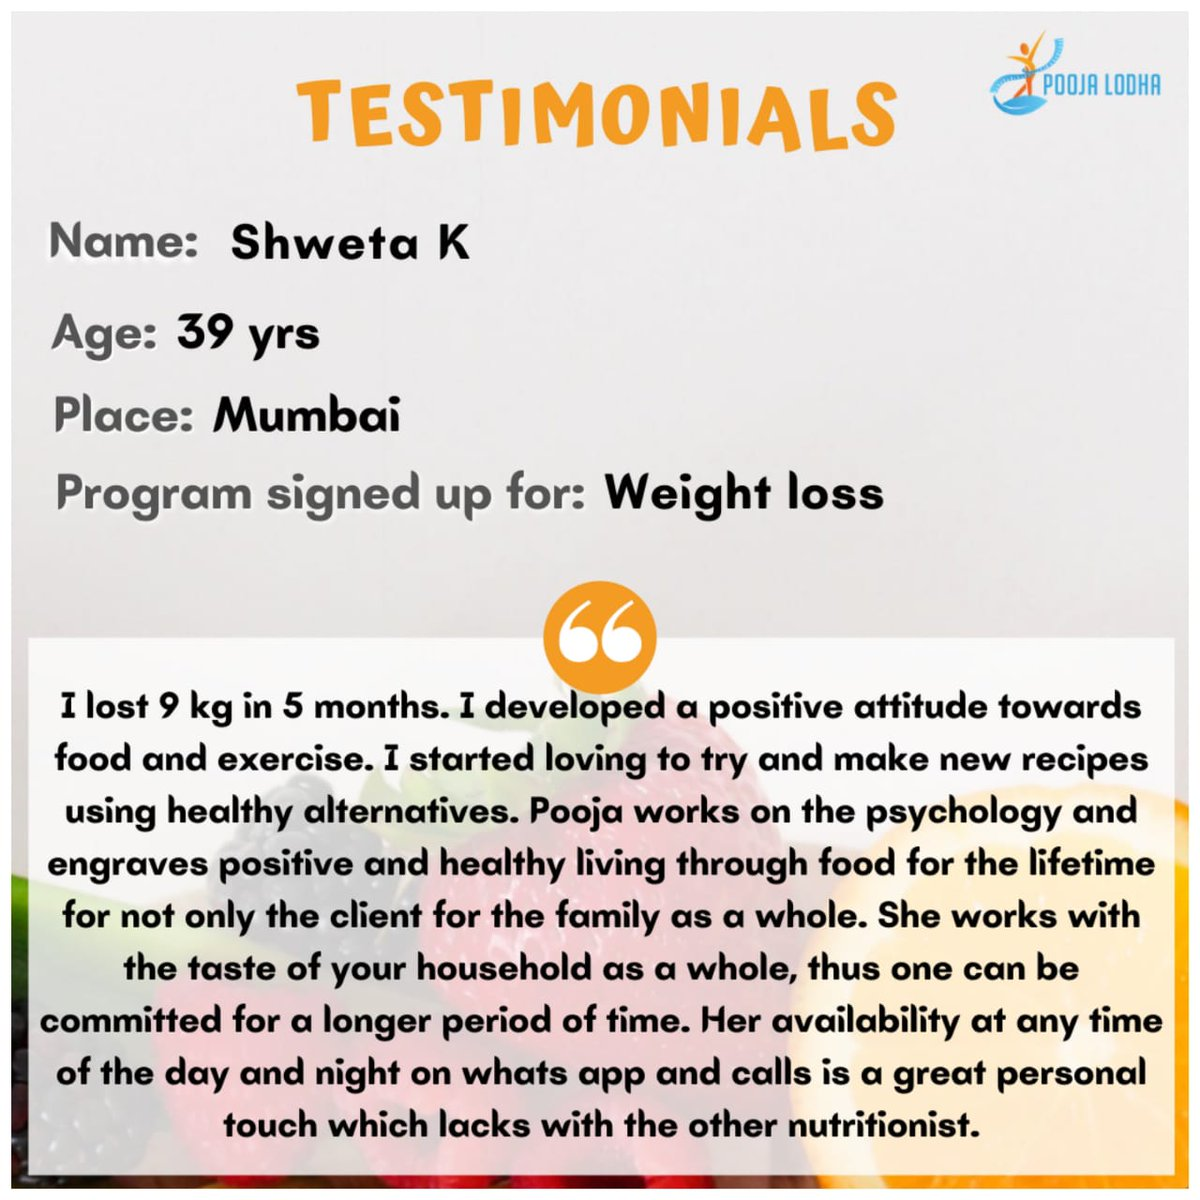 If you wish to be healthy and work on your health journey, connect with us at pooja@myownhealingcircle.com  #testimonials #clientreviews #healthjourney #befit #behealthy #fitnessjourney #fitnesstransformation #weightlossprogram #diabetesmanagement